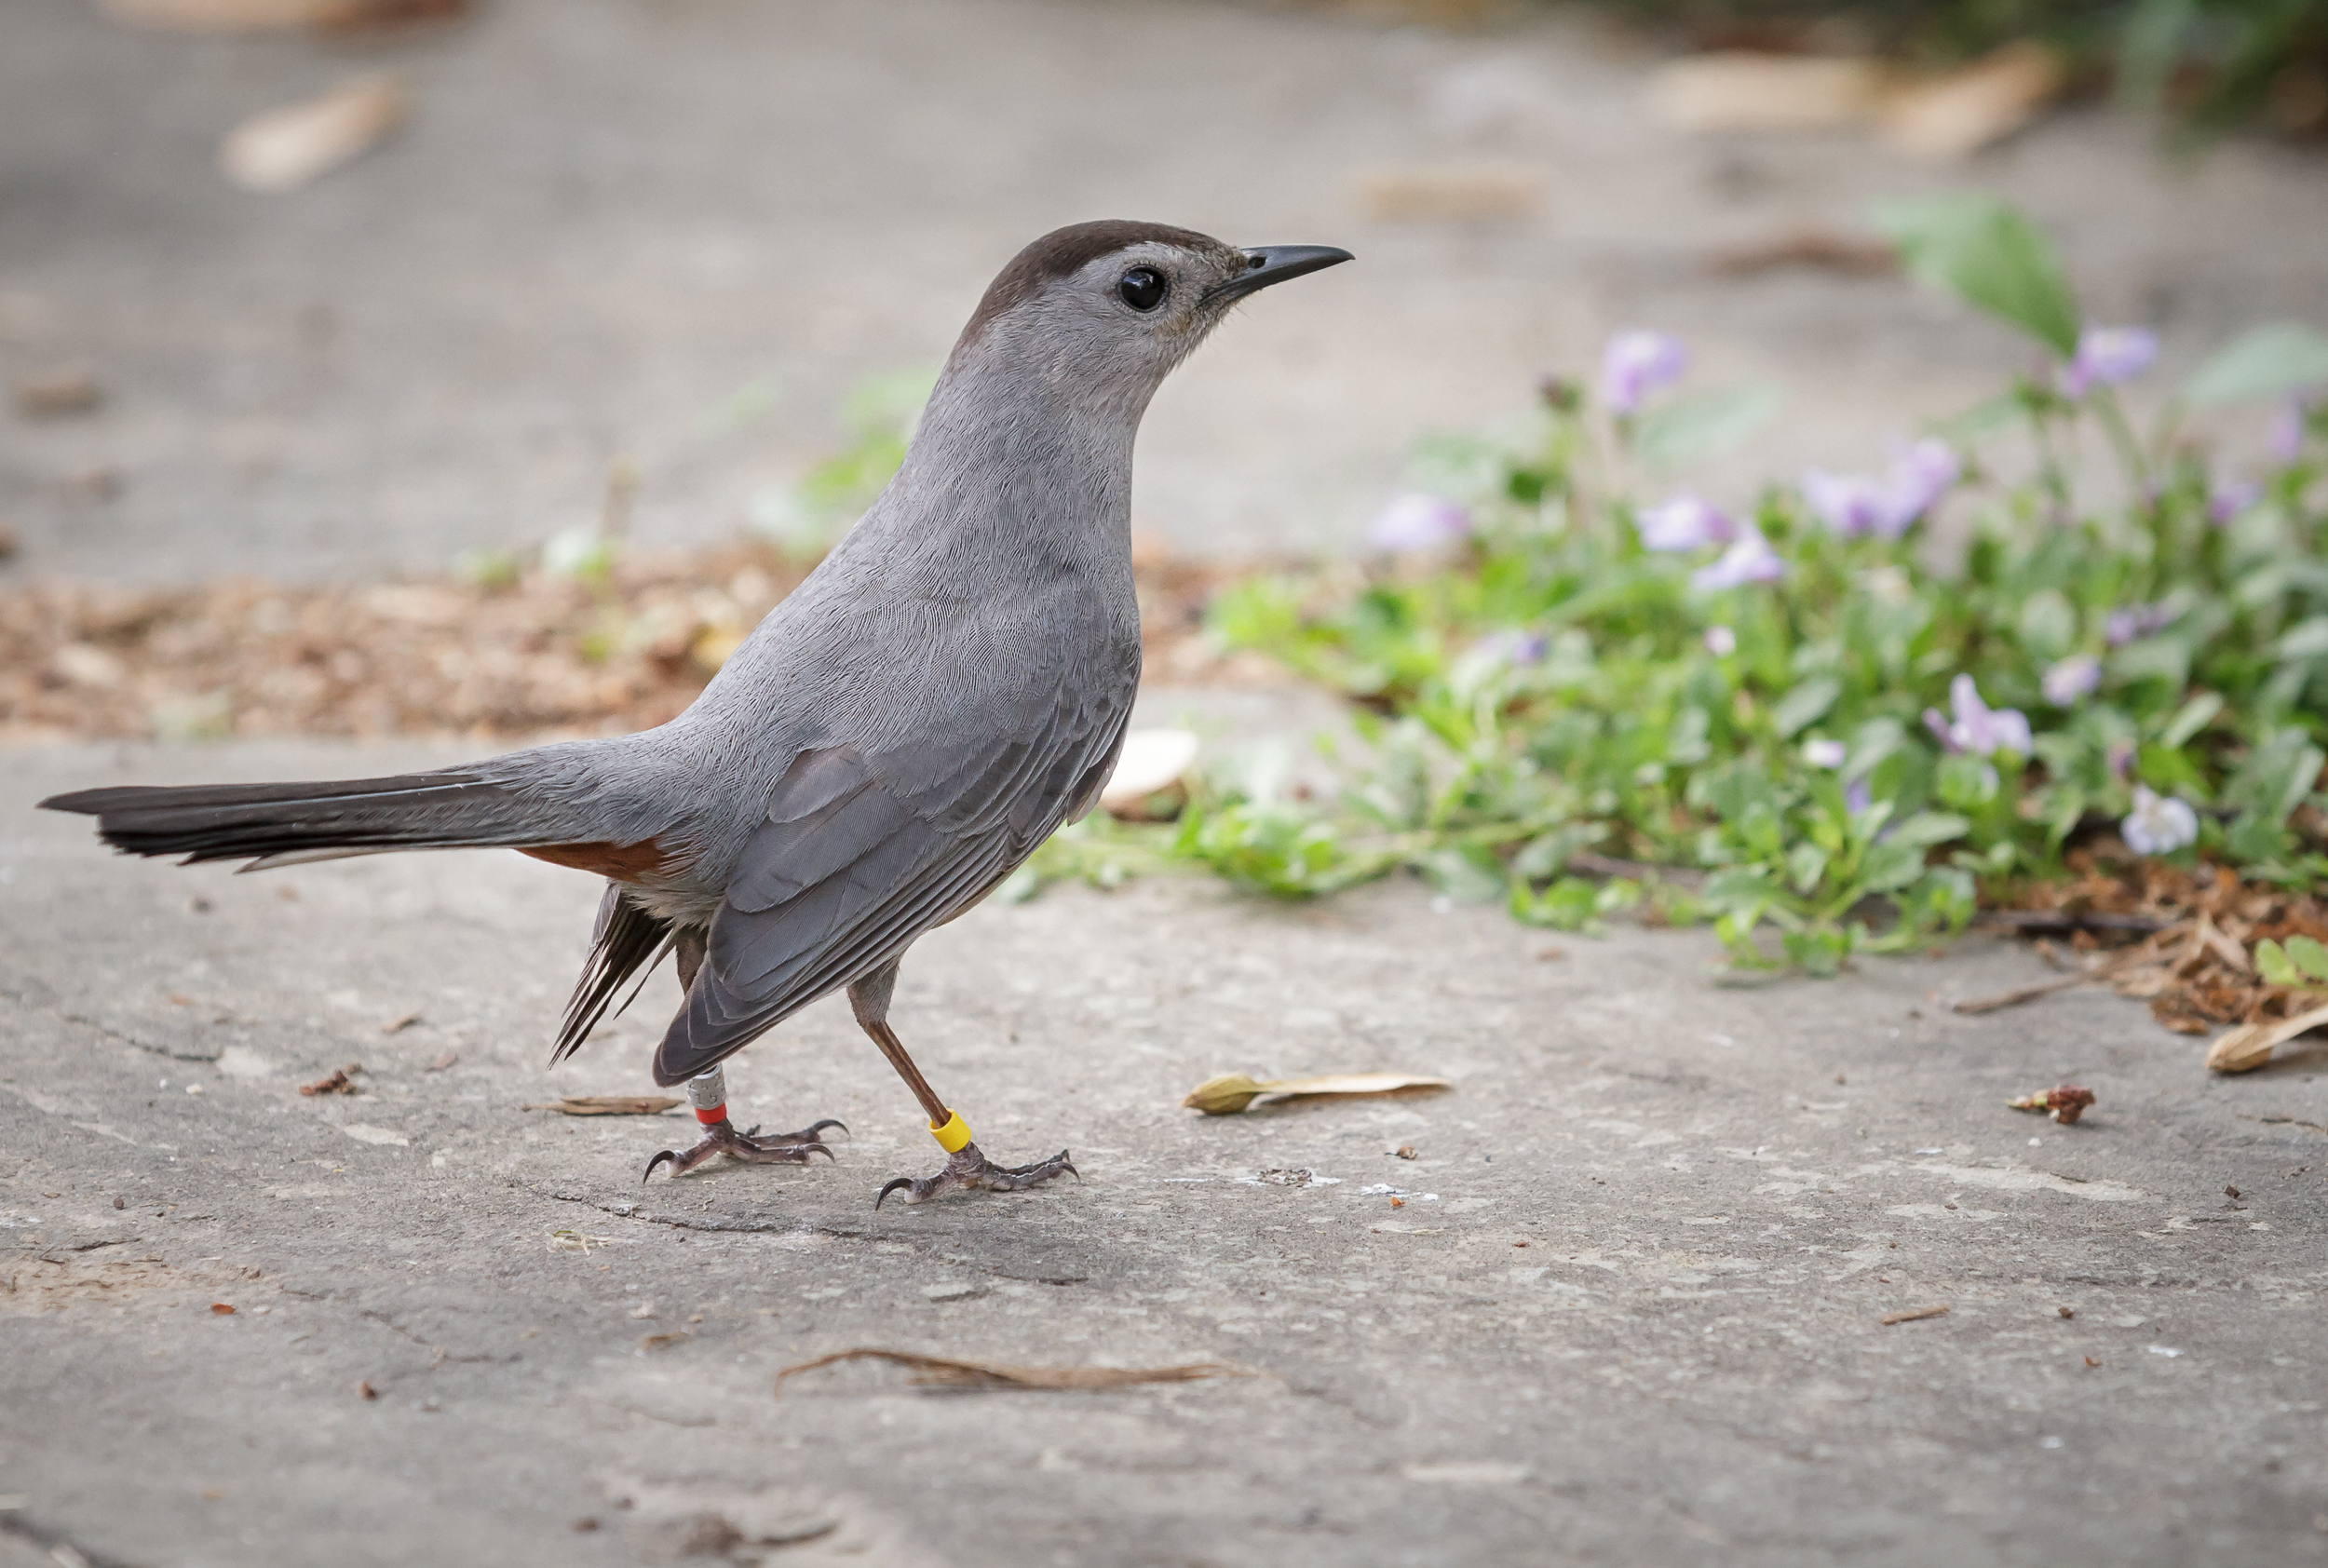 A gray catbird with USGS bands